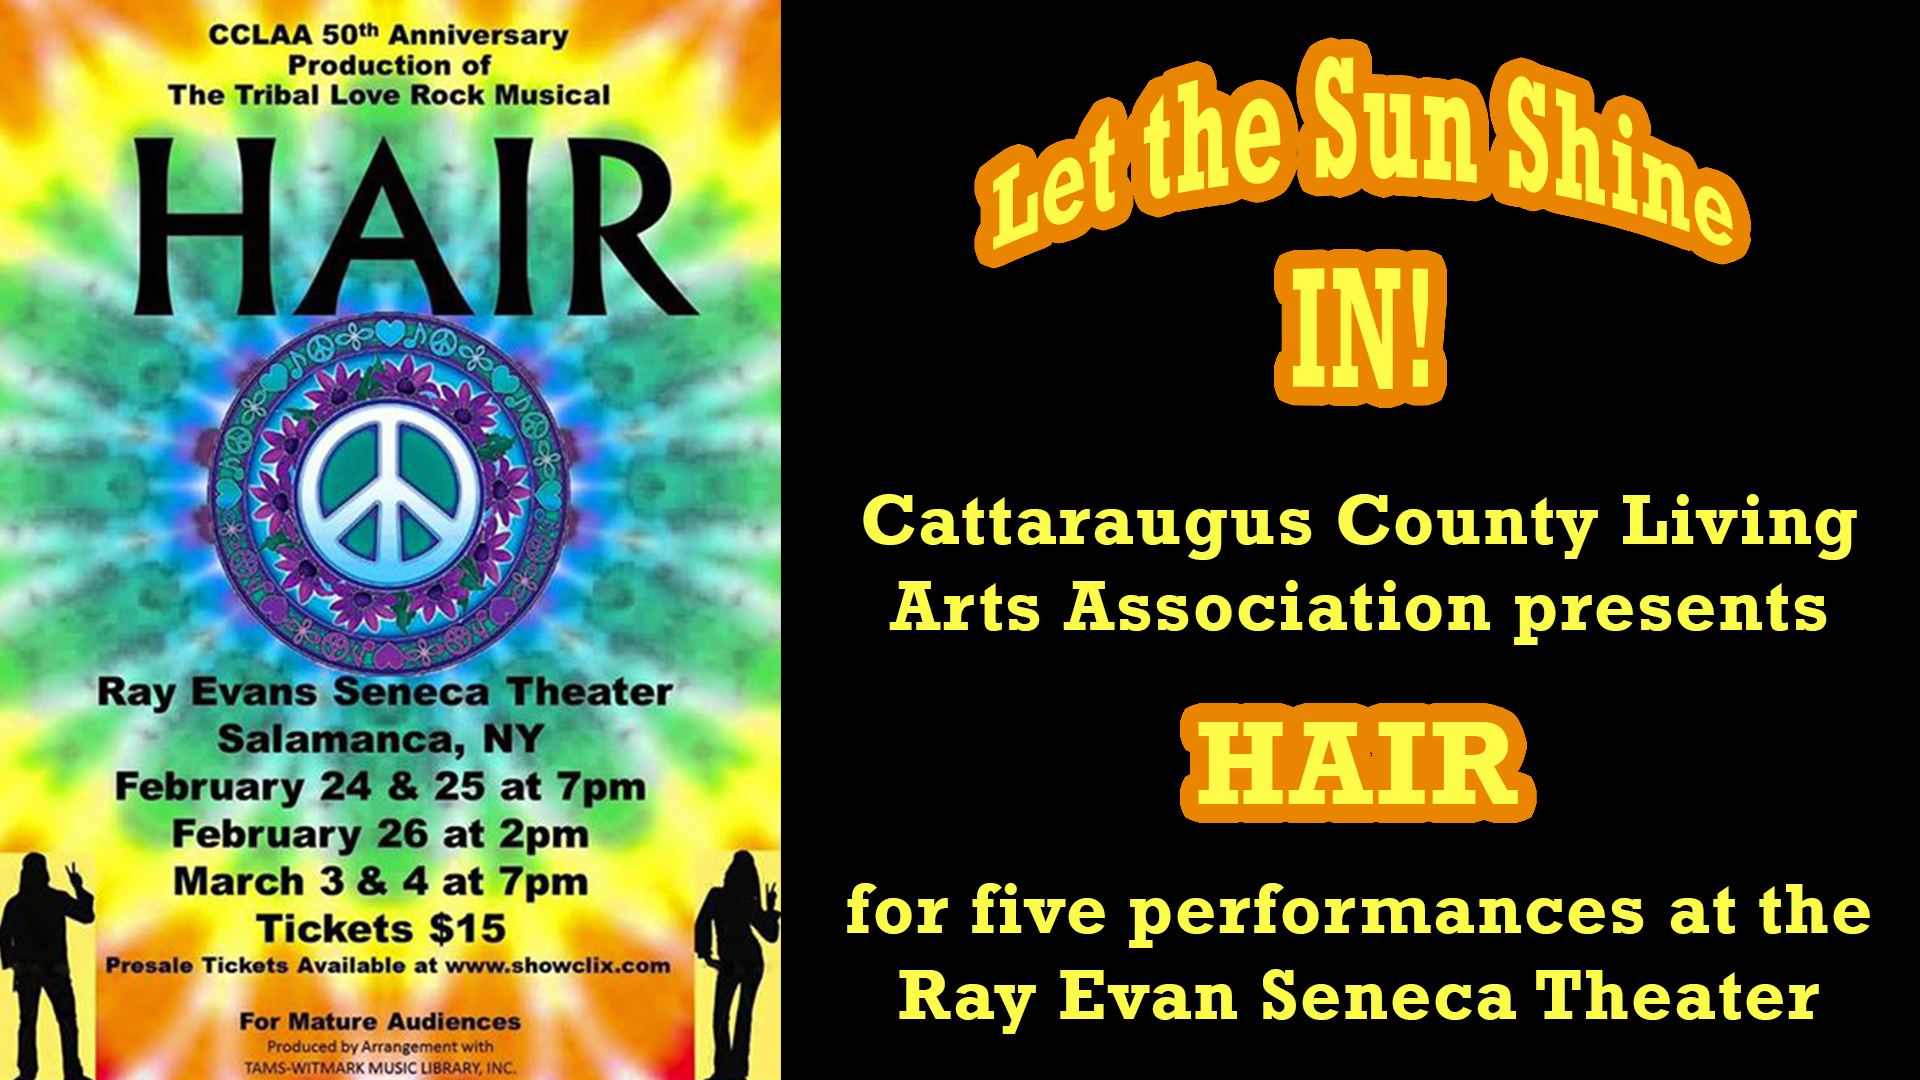 Hair at the Ray Evans Seneca Theater